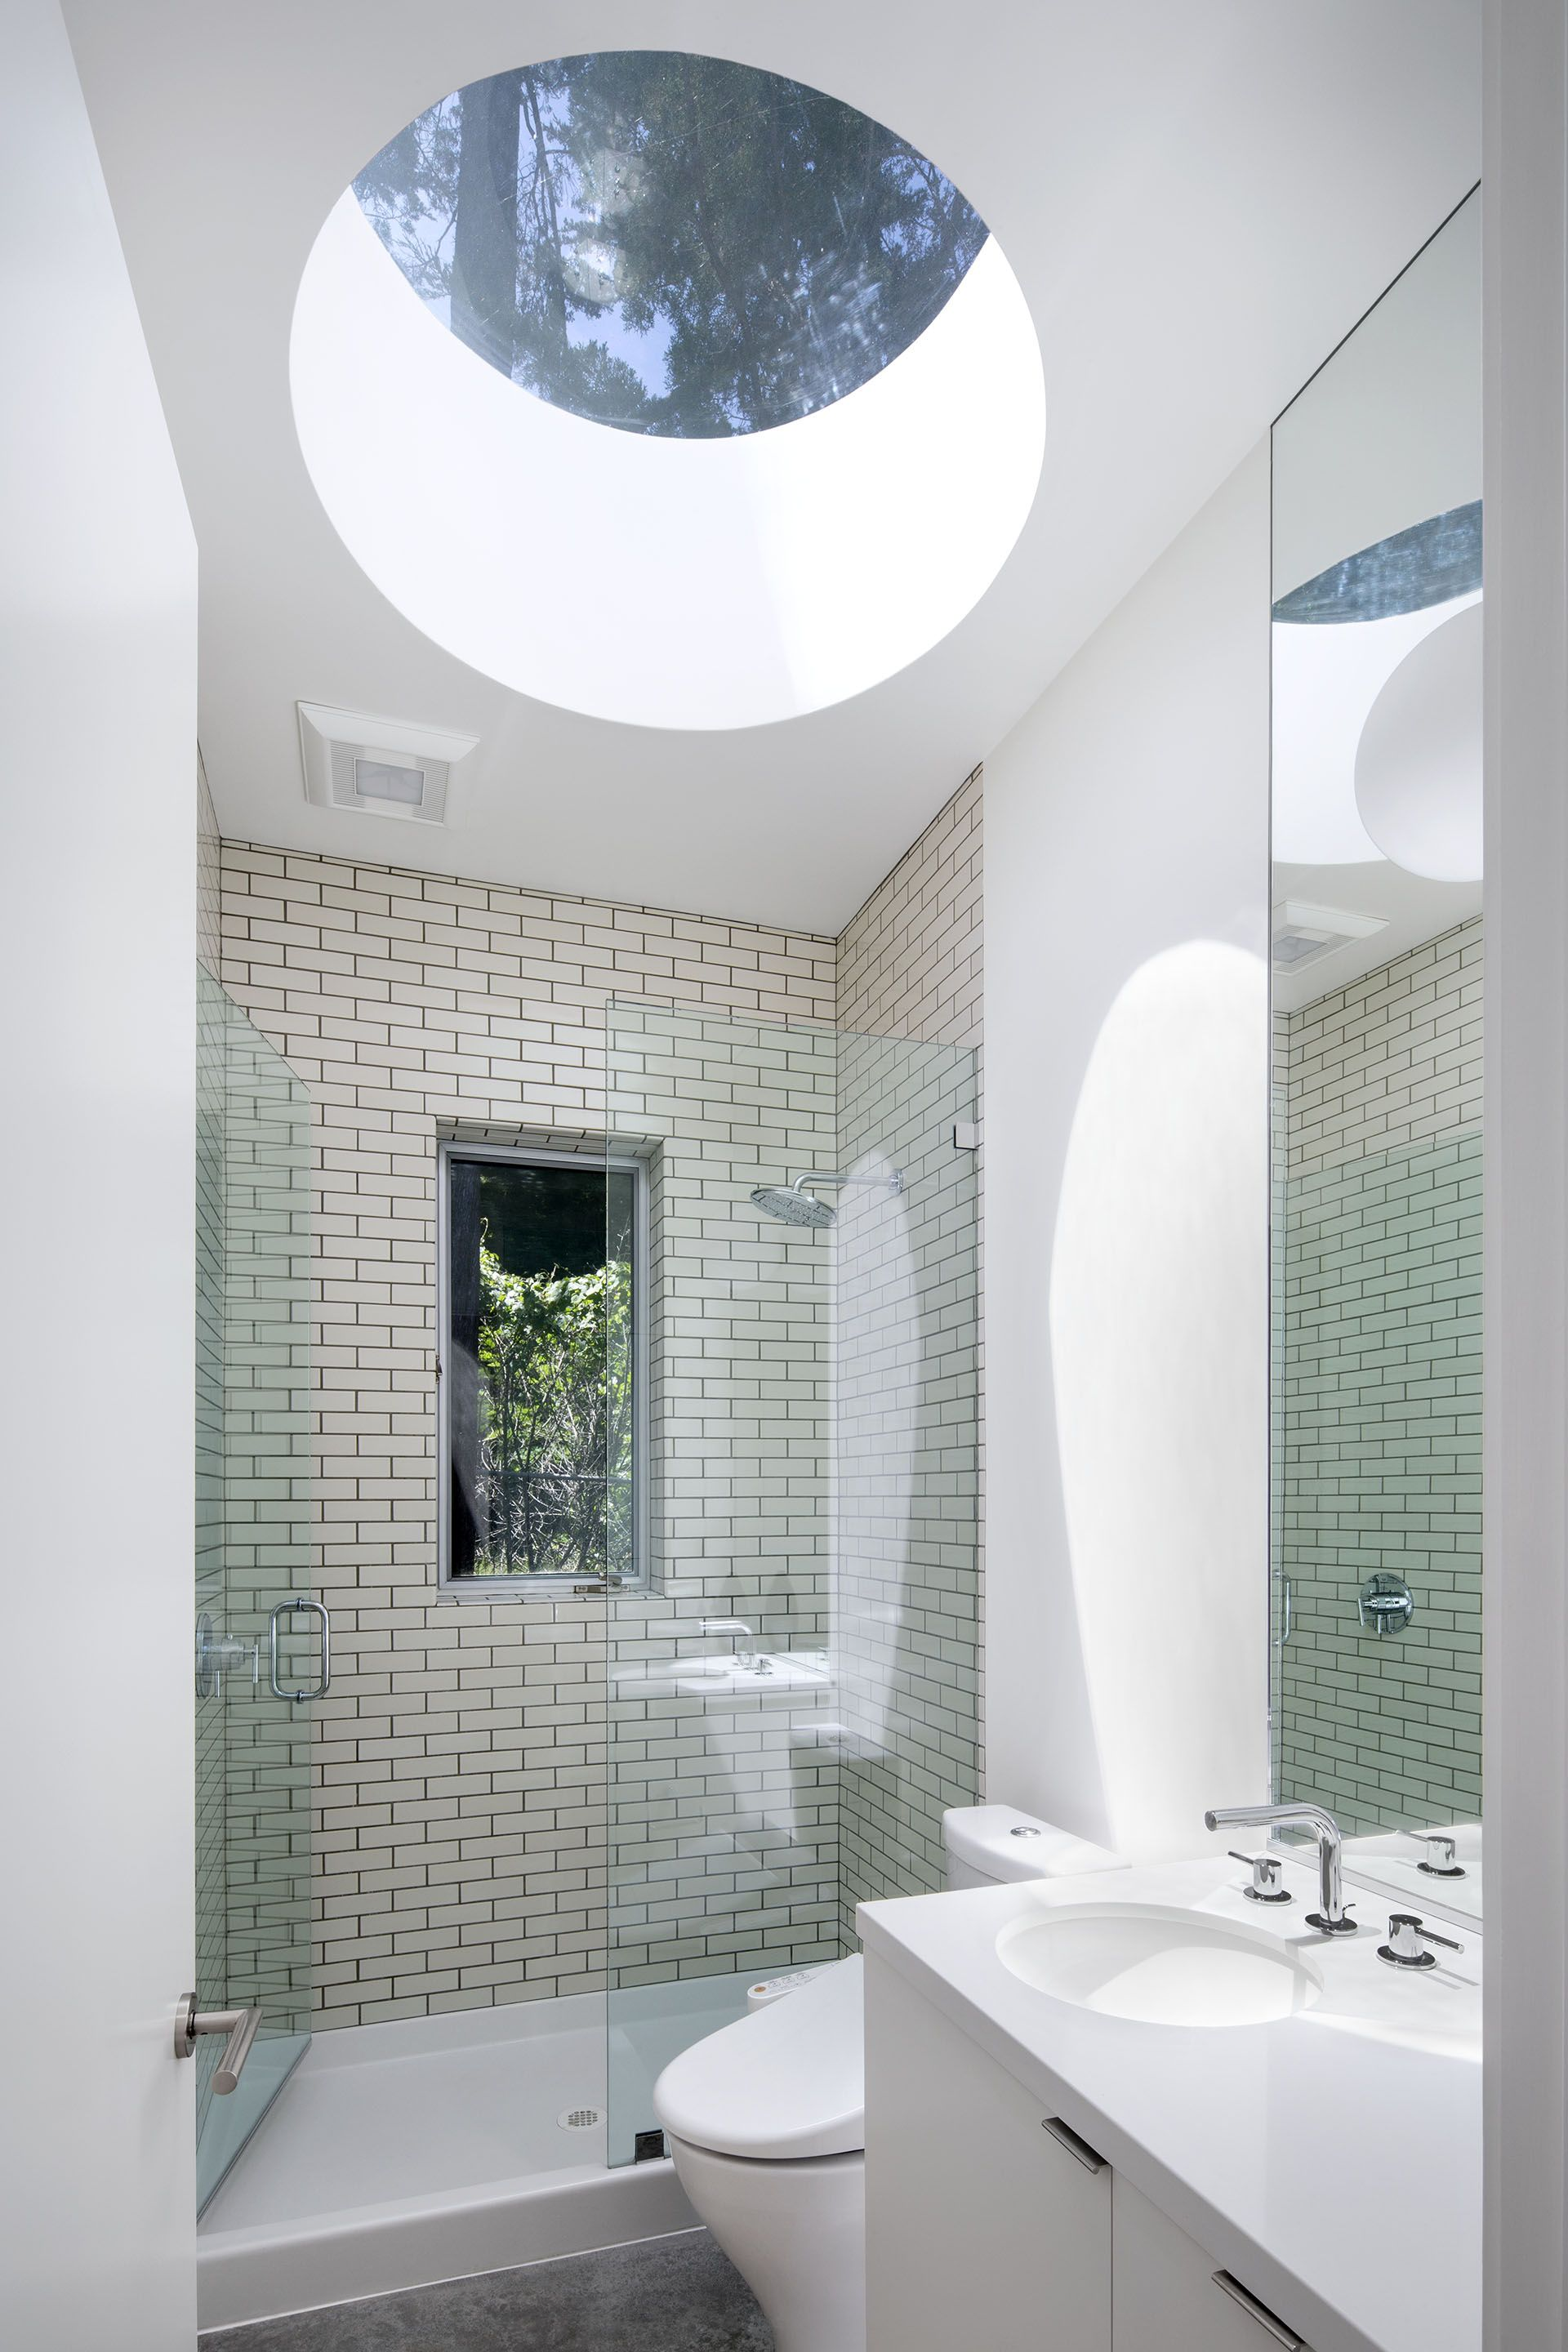 Bathroom with Round Skylight Mill Valley Guesthouse